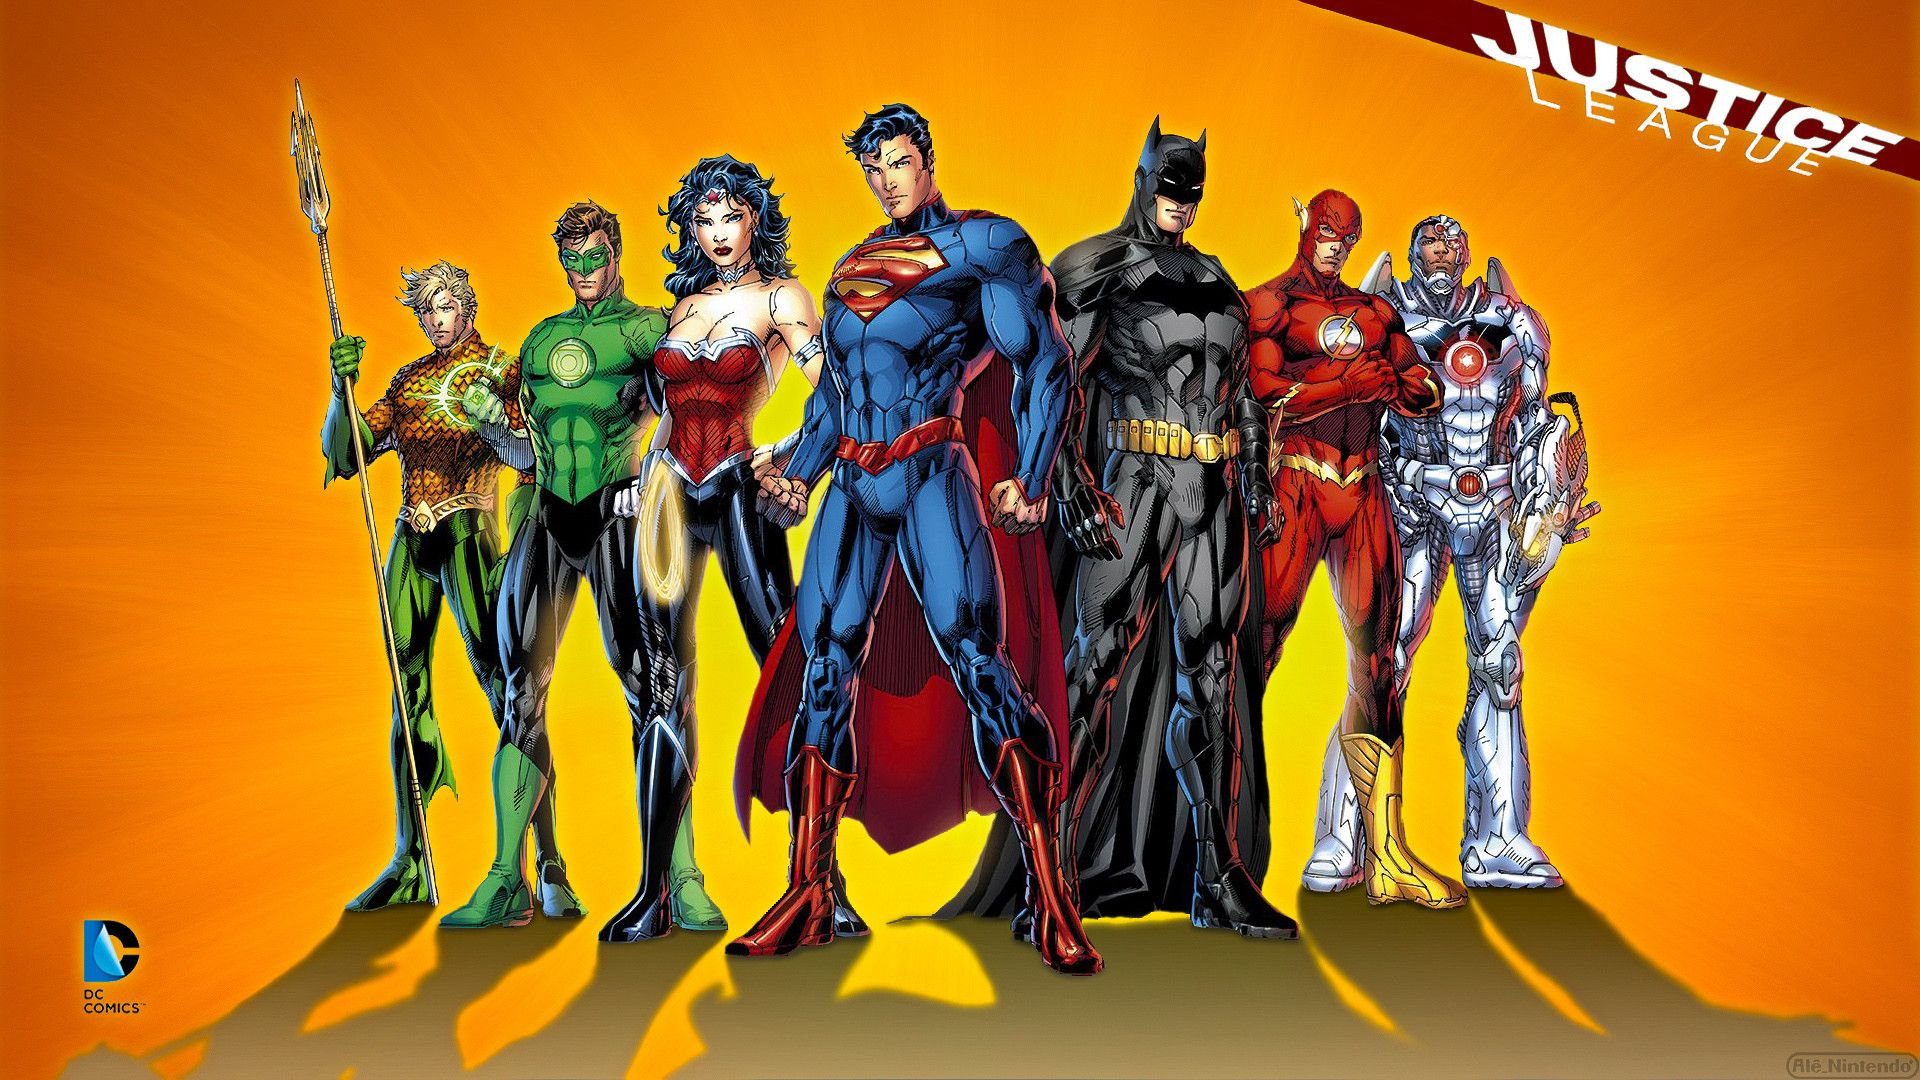 Justice League Wallpapers Free Download